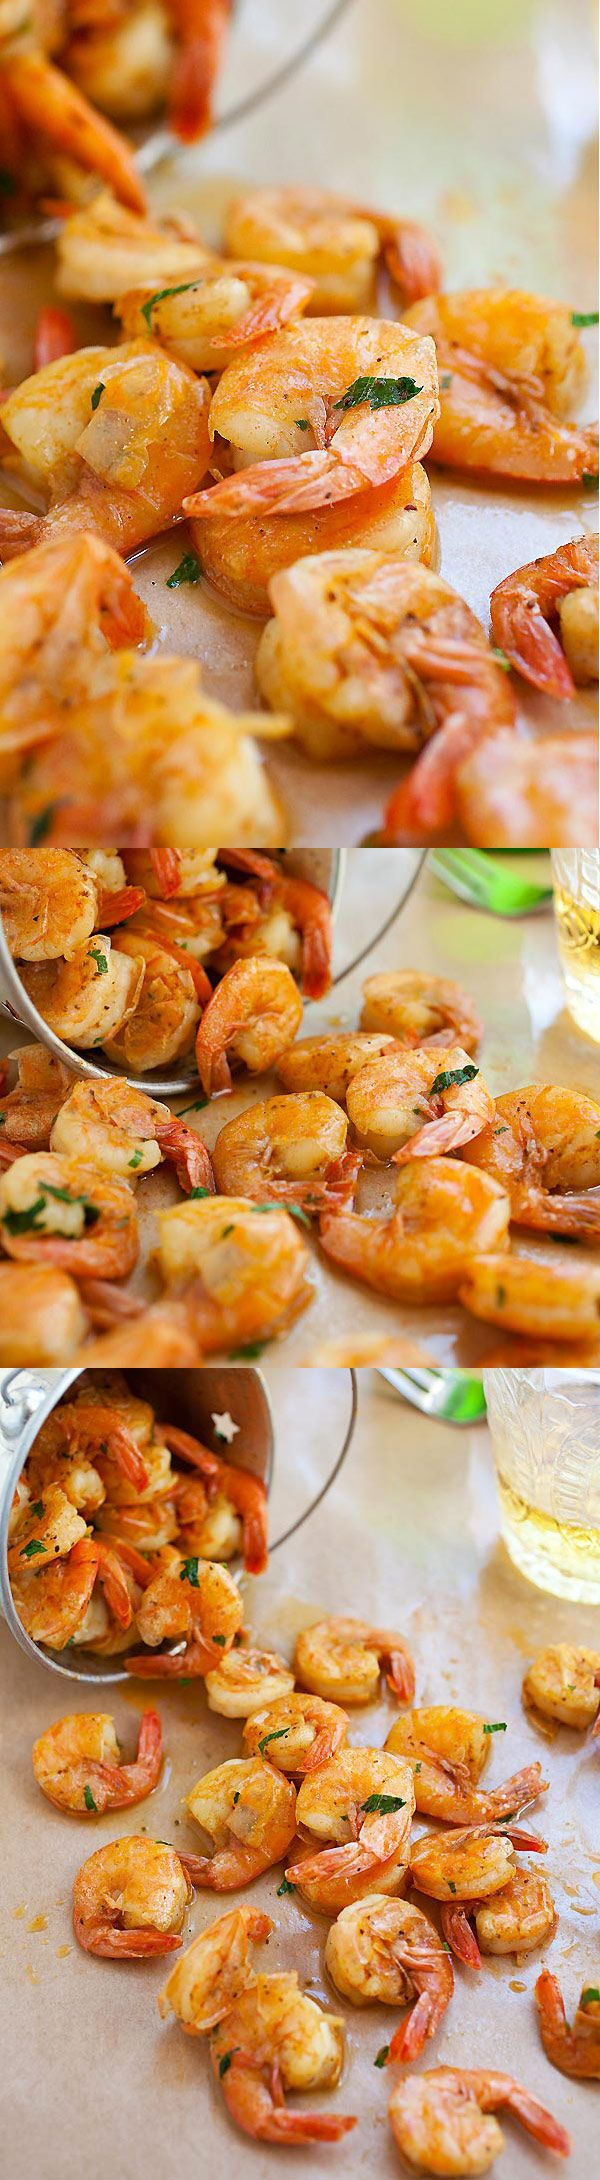 Peel and Eat Shrimp – the easiest shrimp recipe made with butter, beer and spices. Takes 10 mins to make and a staple for summertime! | rasamalaysia.com